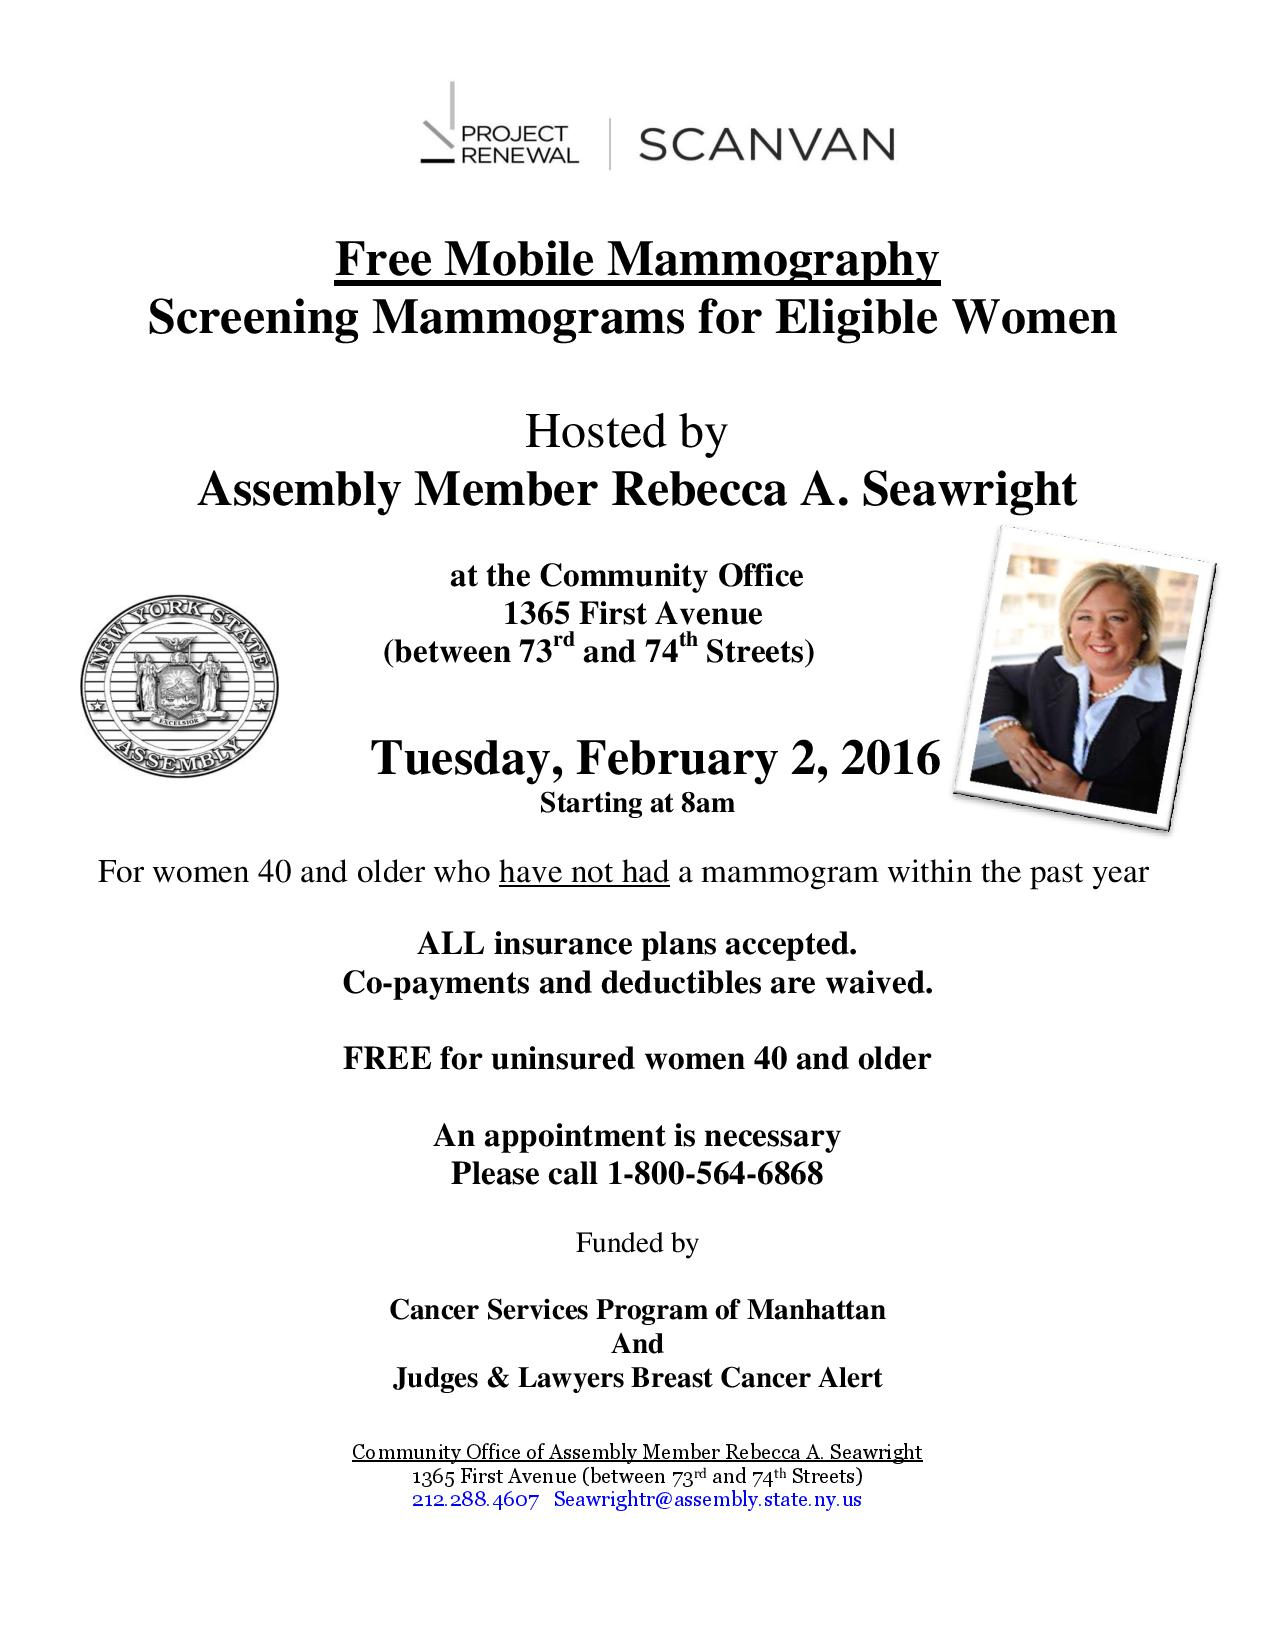 "<a href=""/mem/Rebecca-A-Seawright/story/63276"">Tuesday, February 2- Mammogram Scan Van</a>"